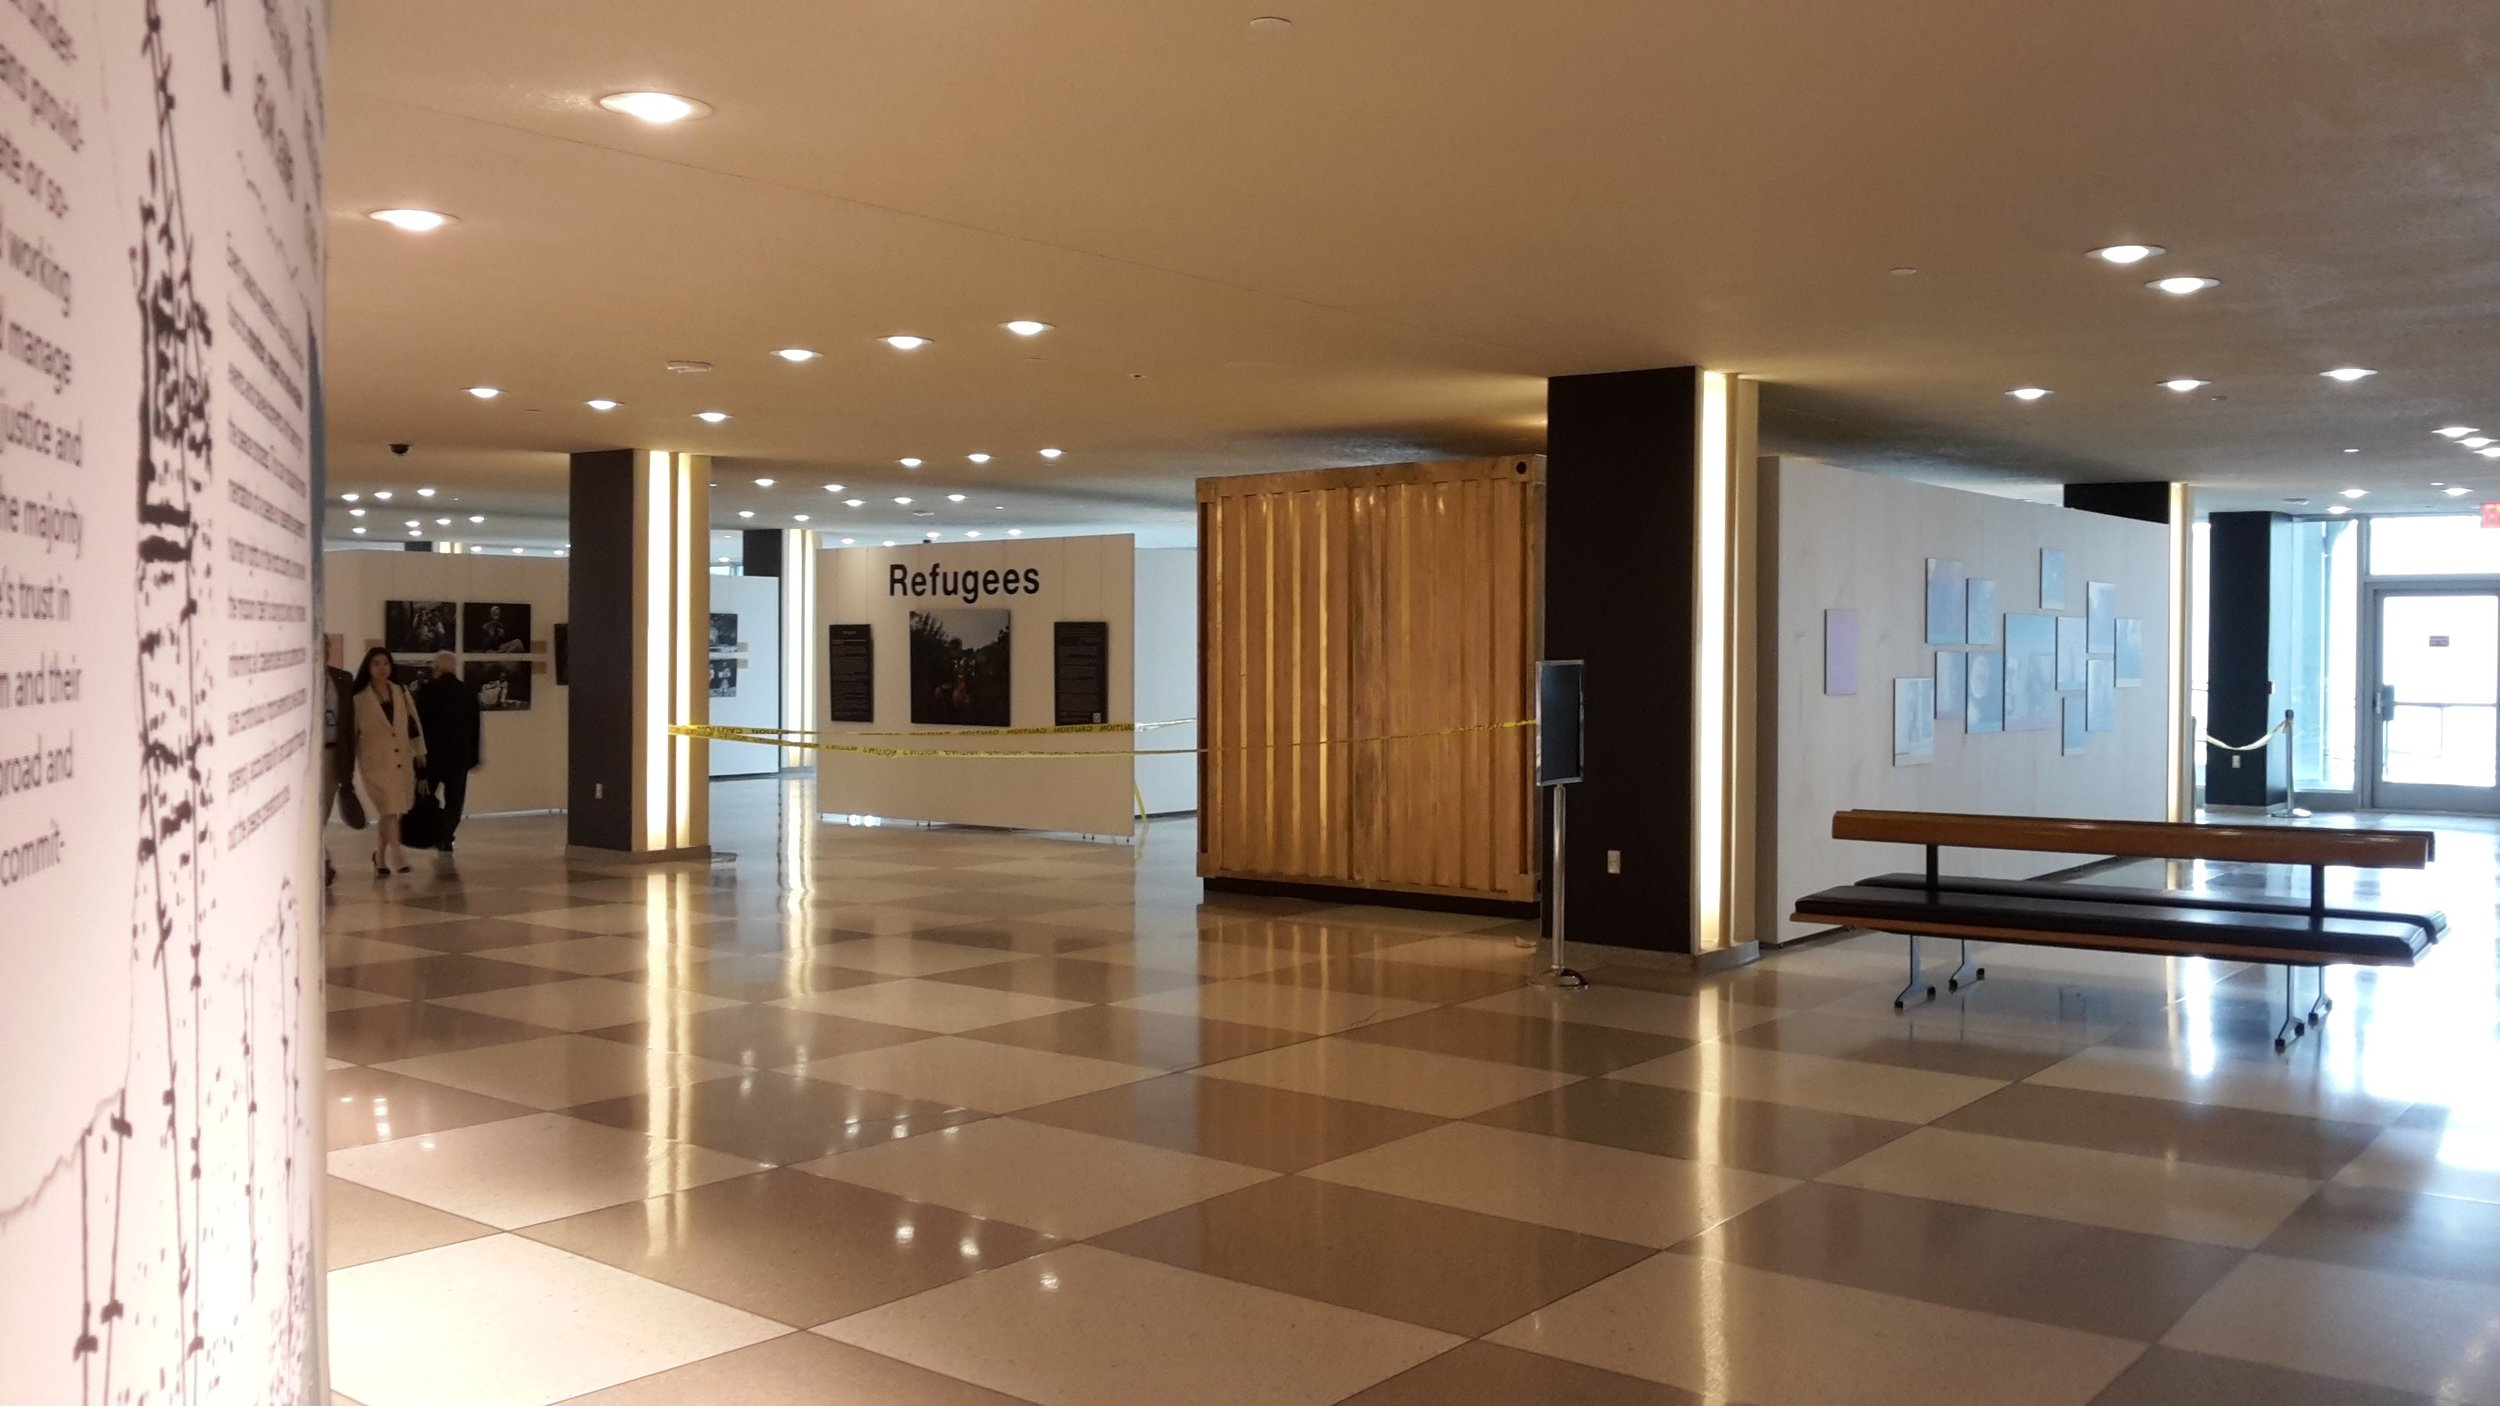 Indoor Portal at the United Nations Headquarters